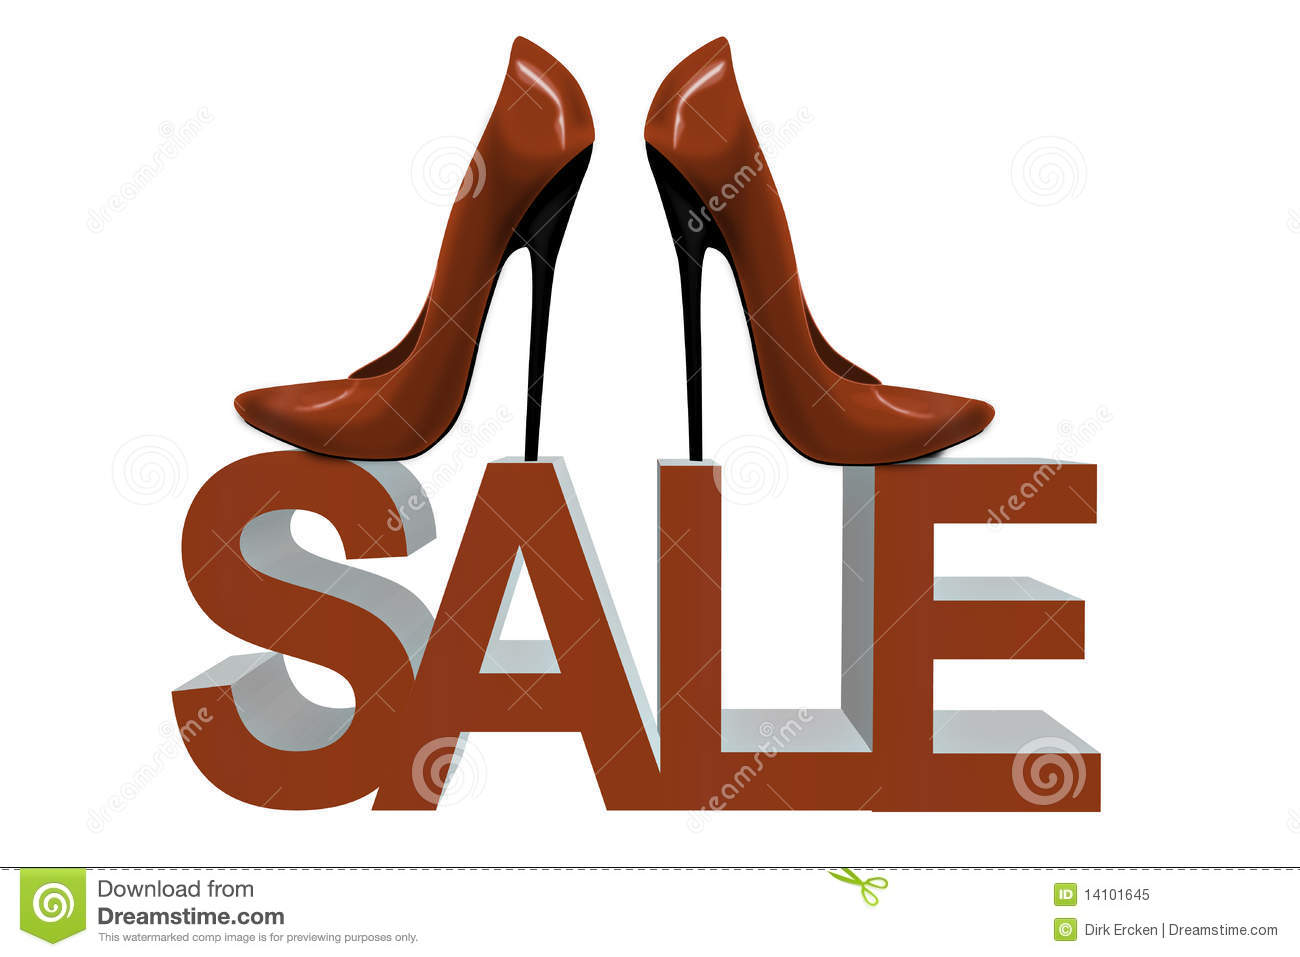 Red Shoes Sale Women Fashion High Heels Illustration 14101645 ...